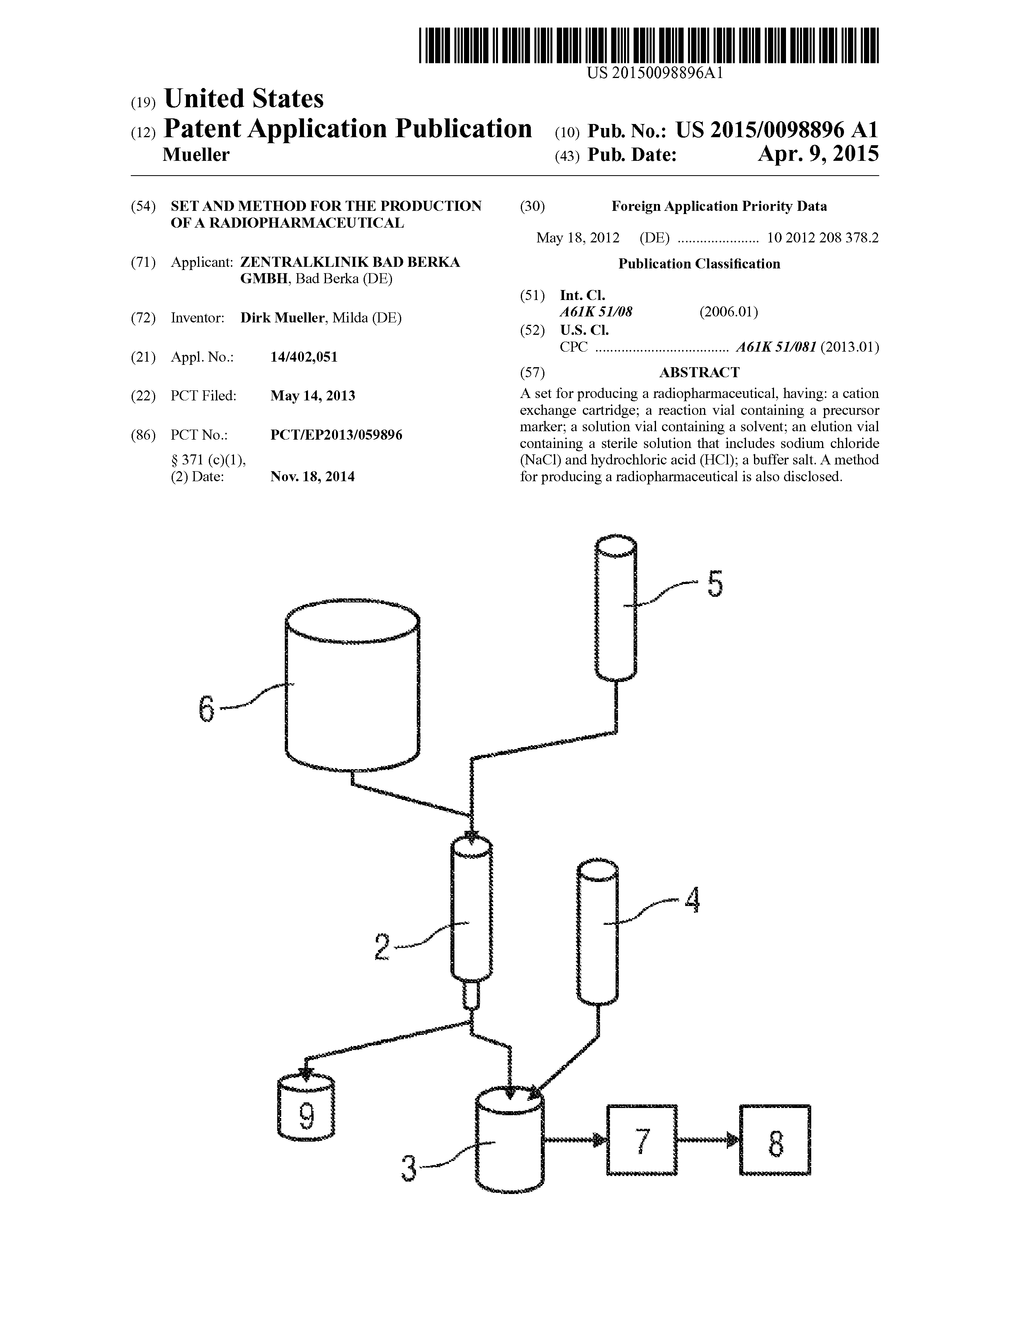 Set and method for the production of a radiopharmaceutical diagram set and method for the production of a radiopharmaceutical diagram schematic and image 01 ccuart Choice Image